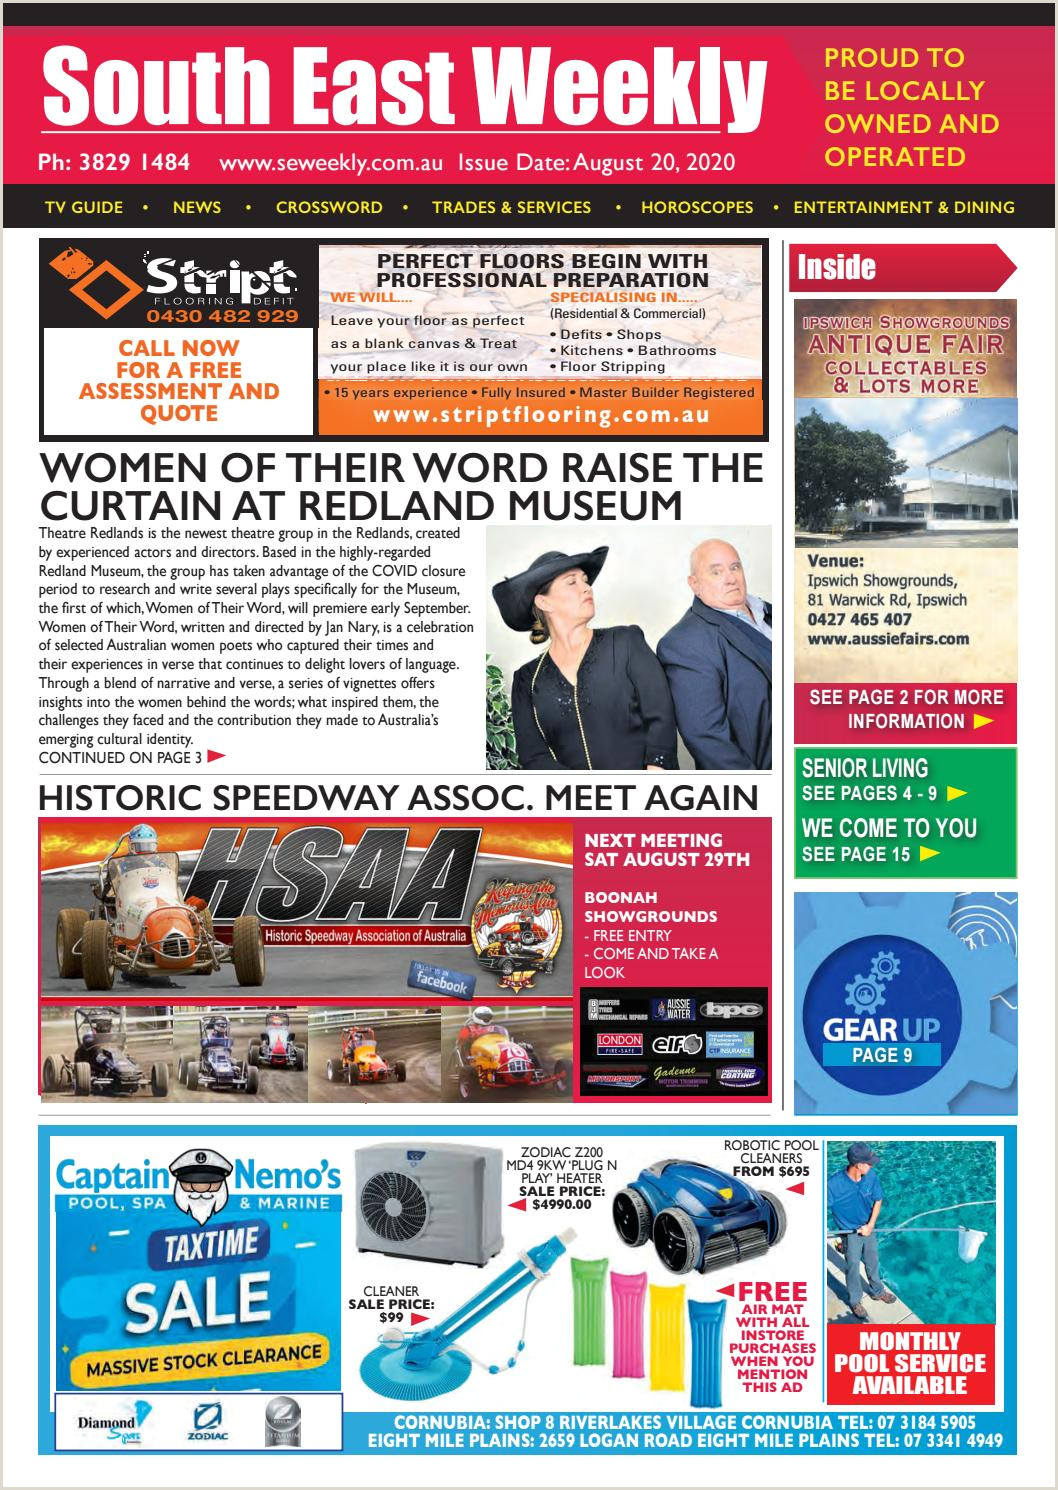 Retractable Displays Roll Ups South East Weekly Magazine Aug 20 2020 By South East Weekly